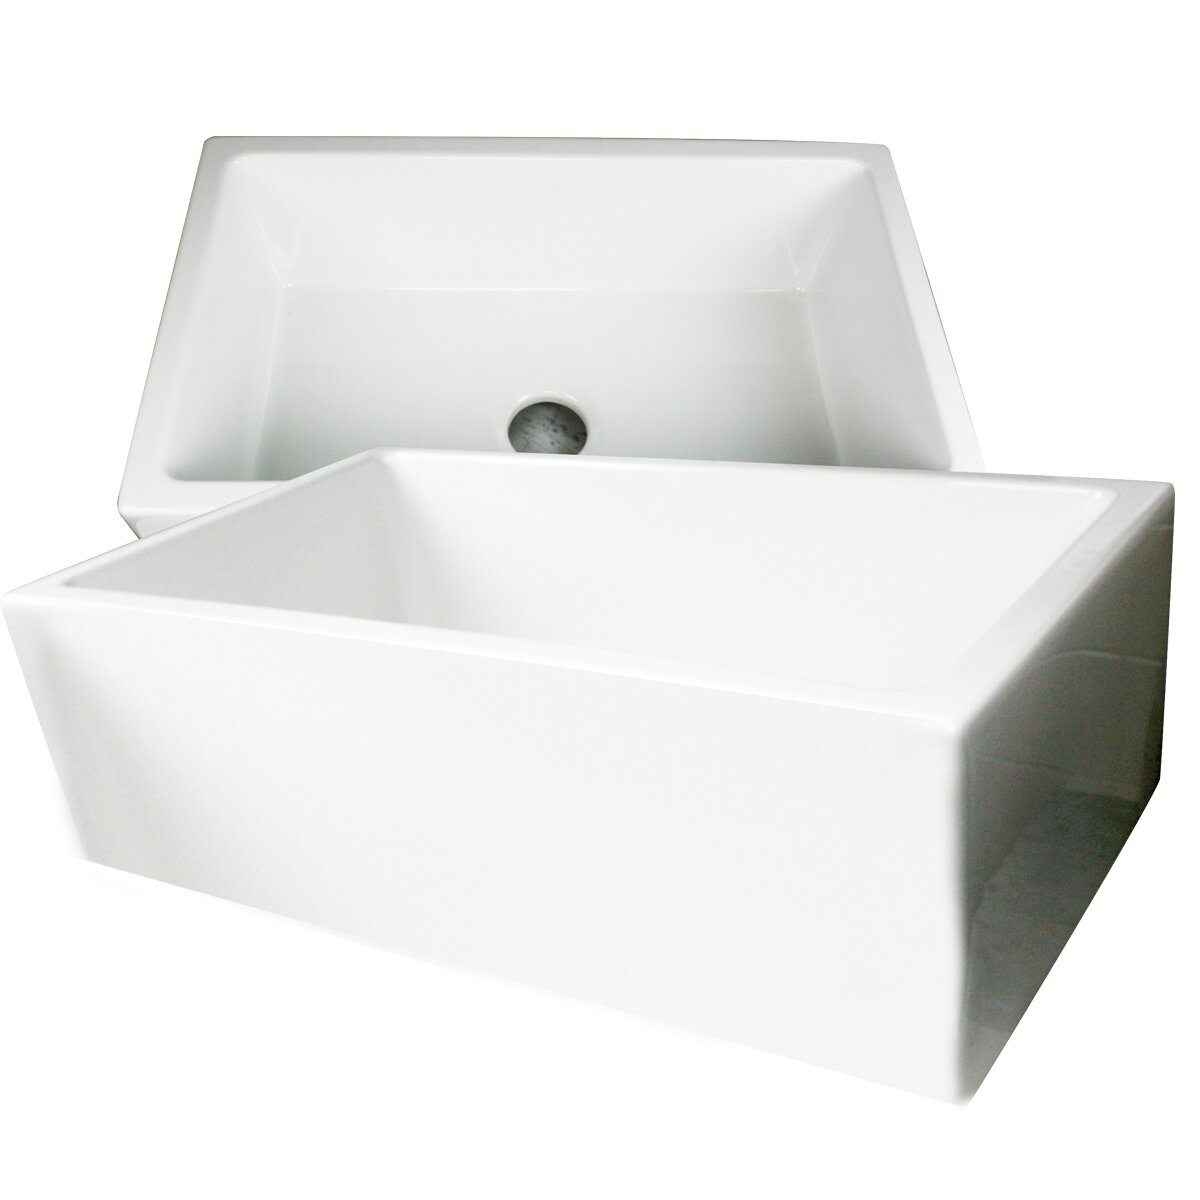 "Nantucket Sinks Hyannis 30"" x 18"" Italian Farmhouse Fireclay Sink &"